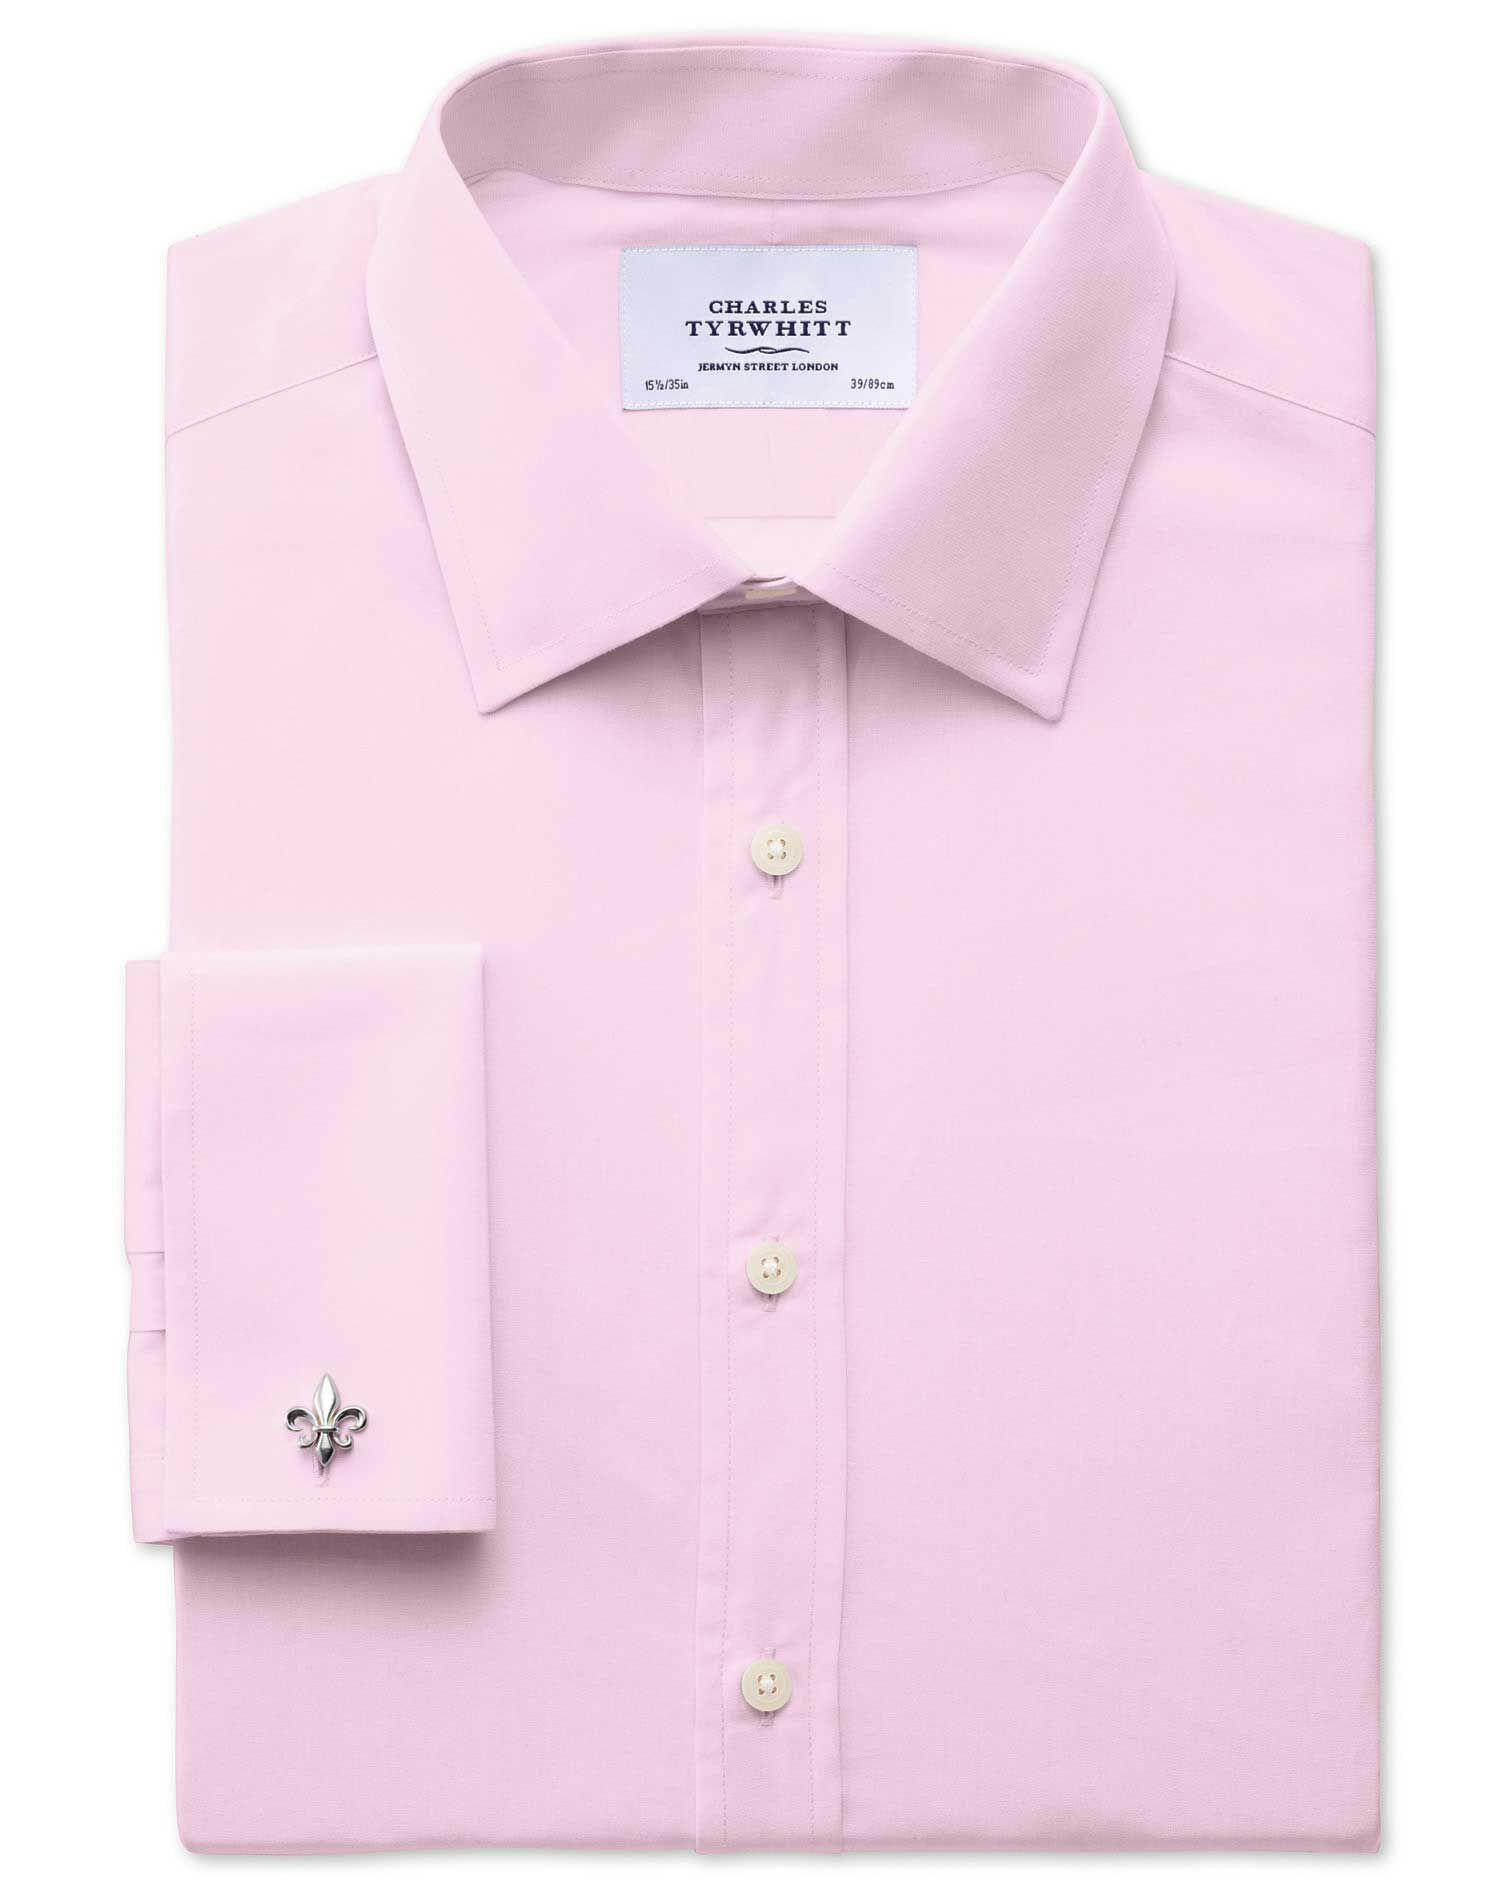 Extra Slim Fit End-On-End Pink Cotton Formal Shirt Single Cuff Size 16.5/34 by Charles Tyrwhitt